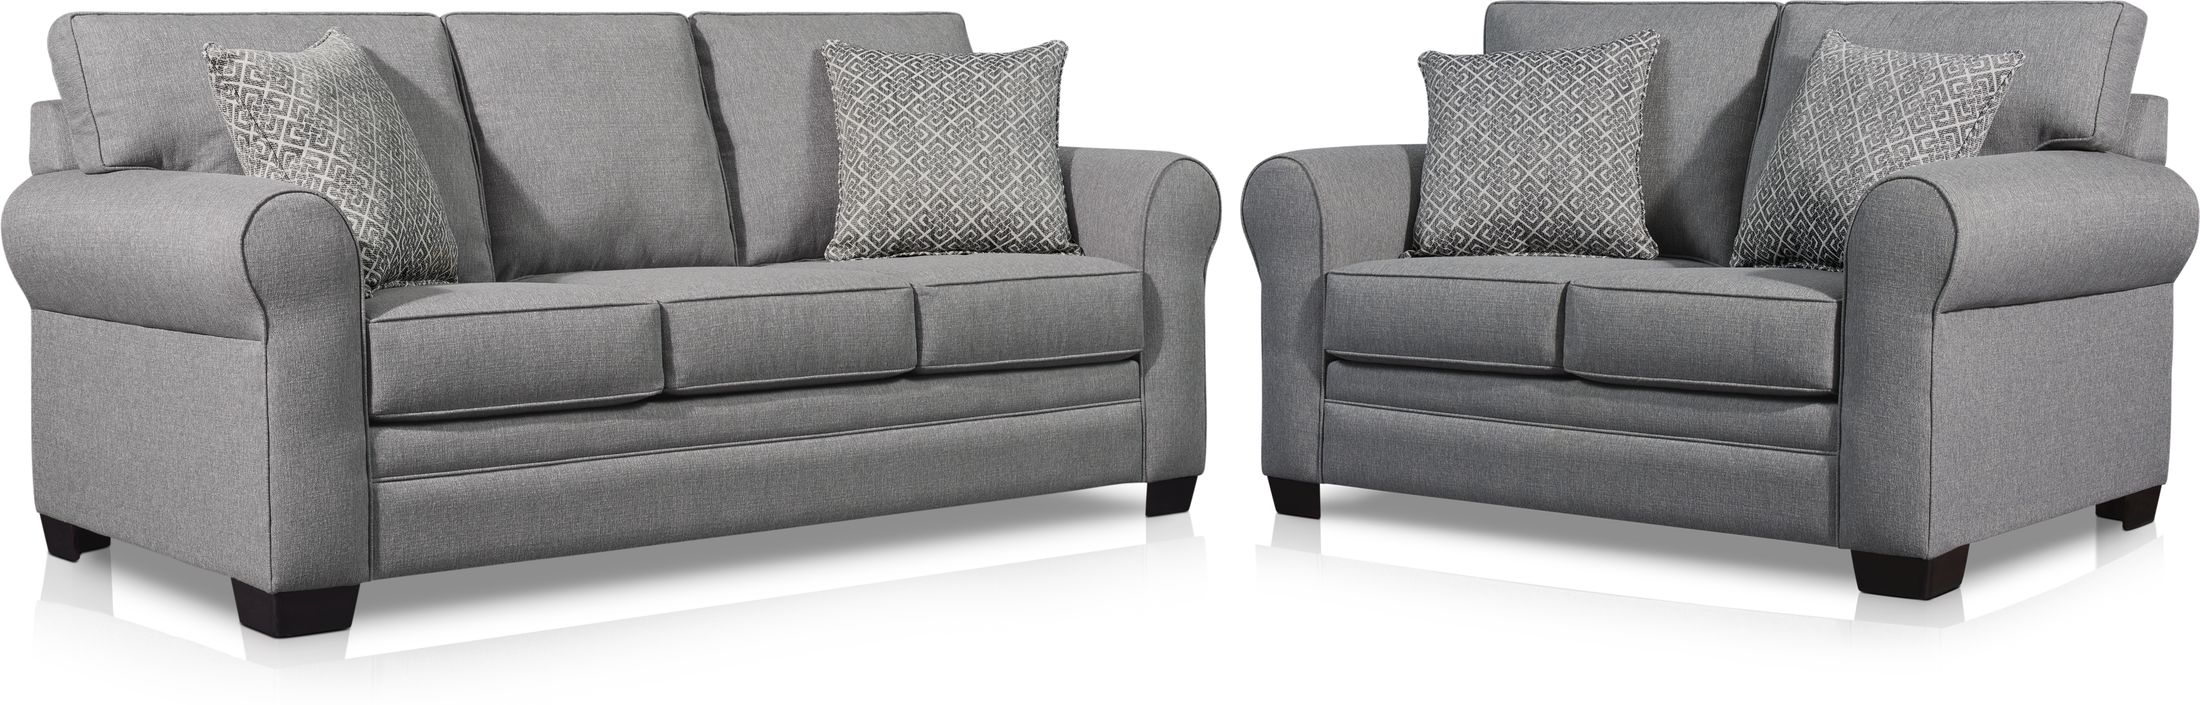 Picture of: Camila Sofa And Loveseat Set Value City Furniture And Mattresses